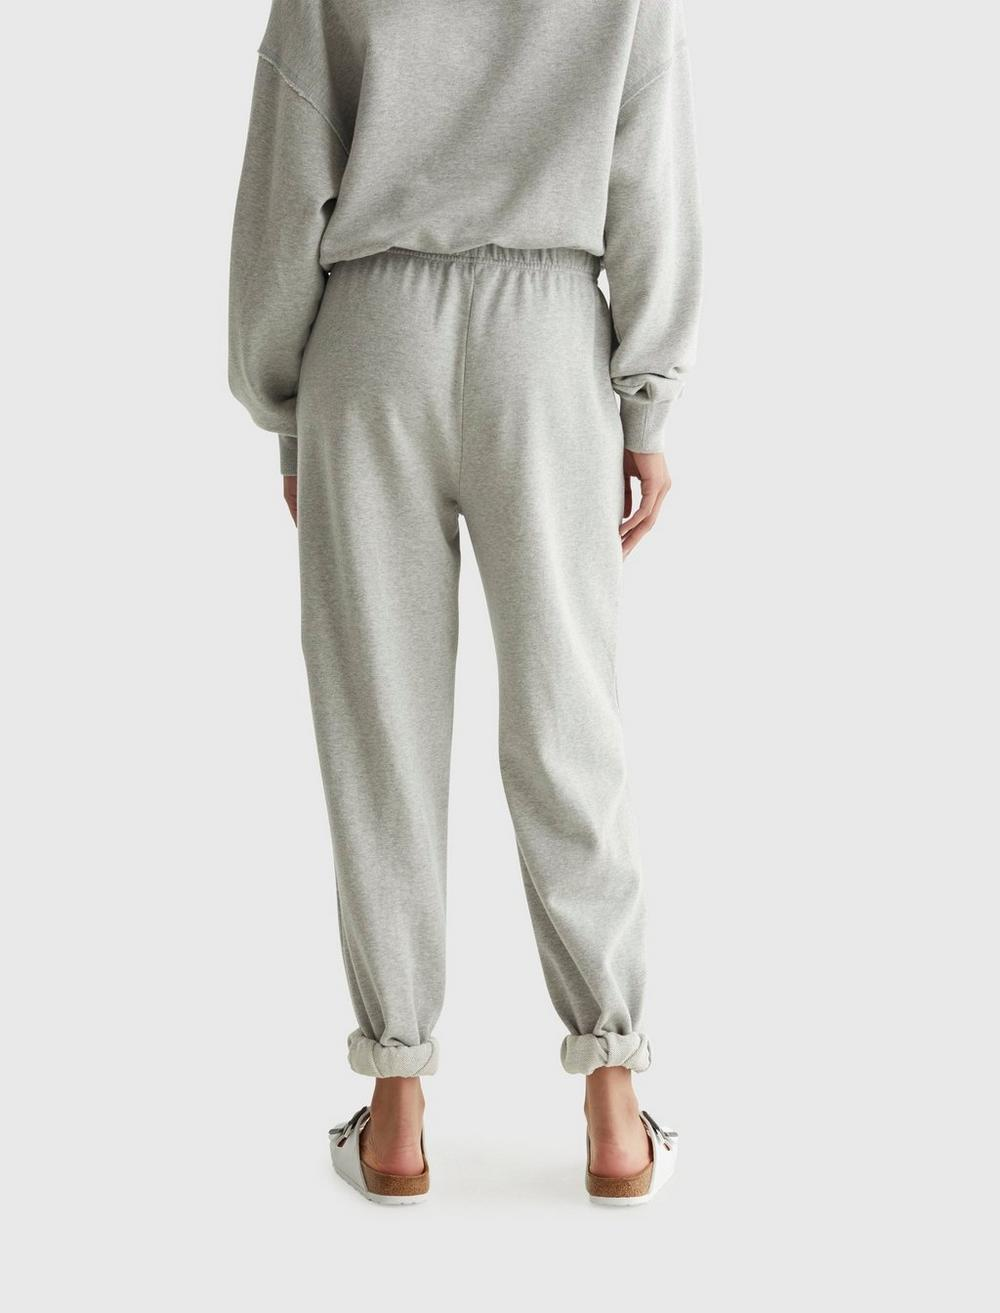 CHILL AT HOME FLEECE JOGGER, image 5